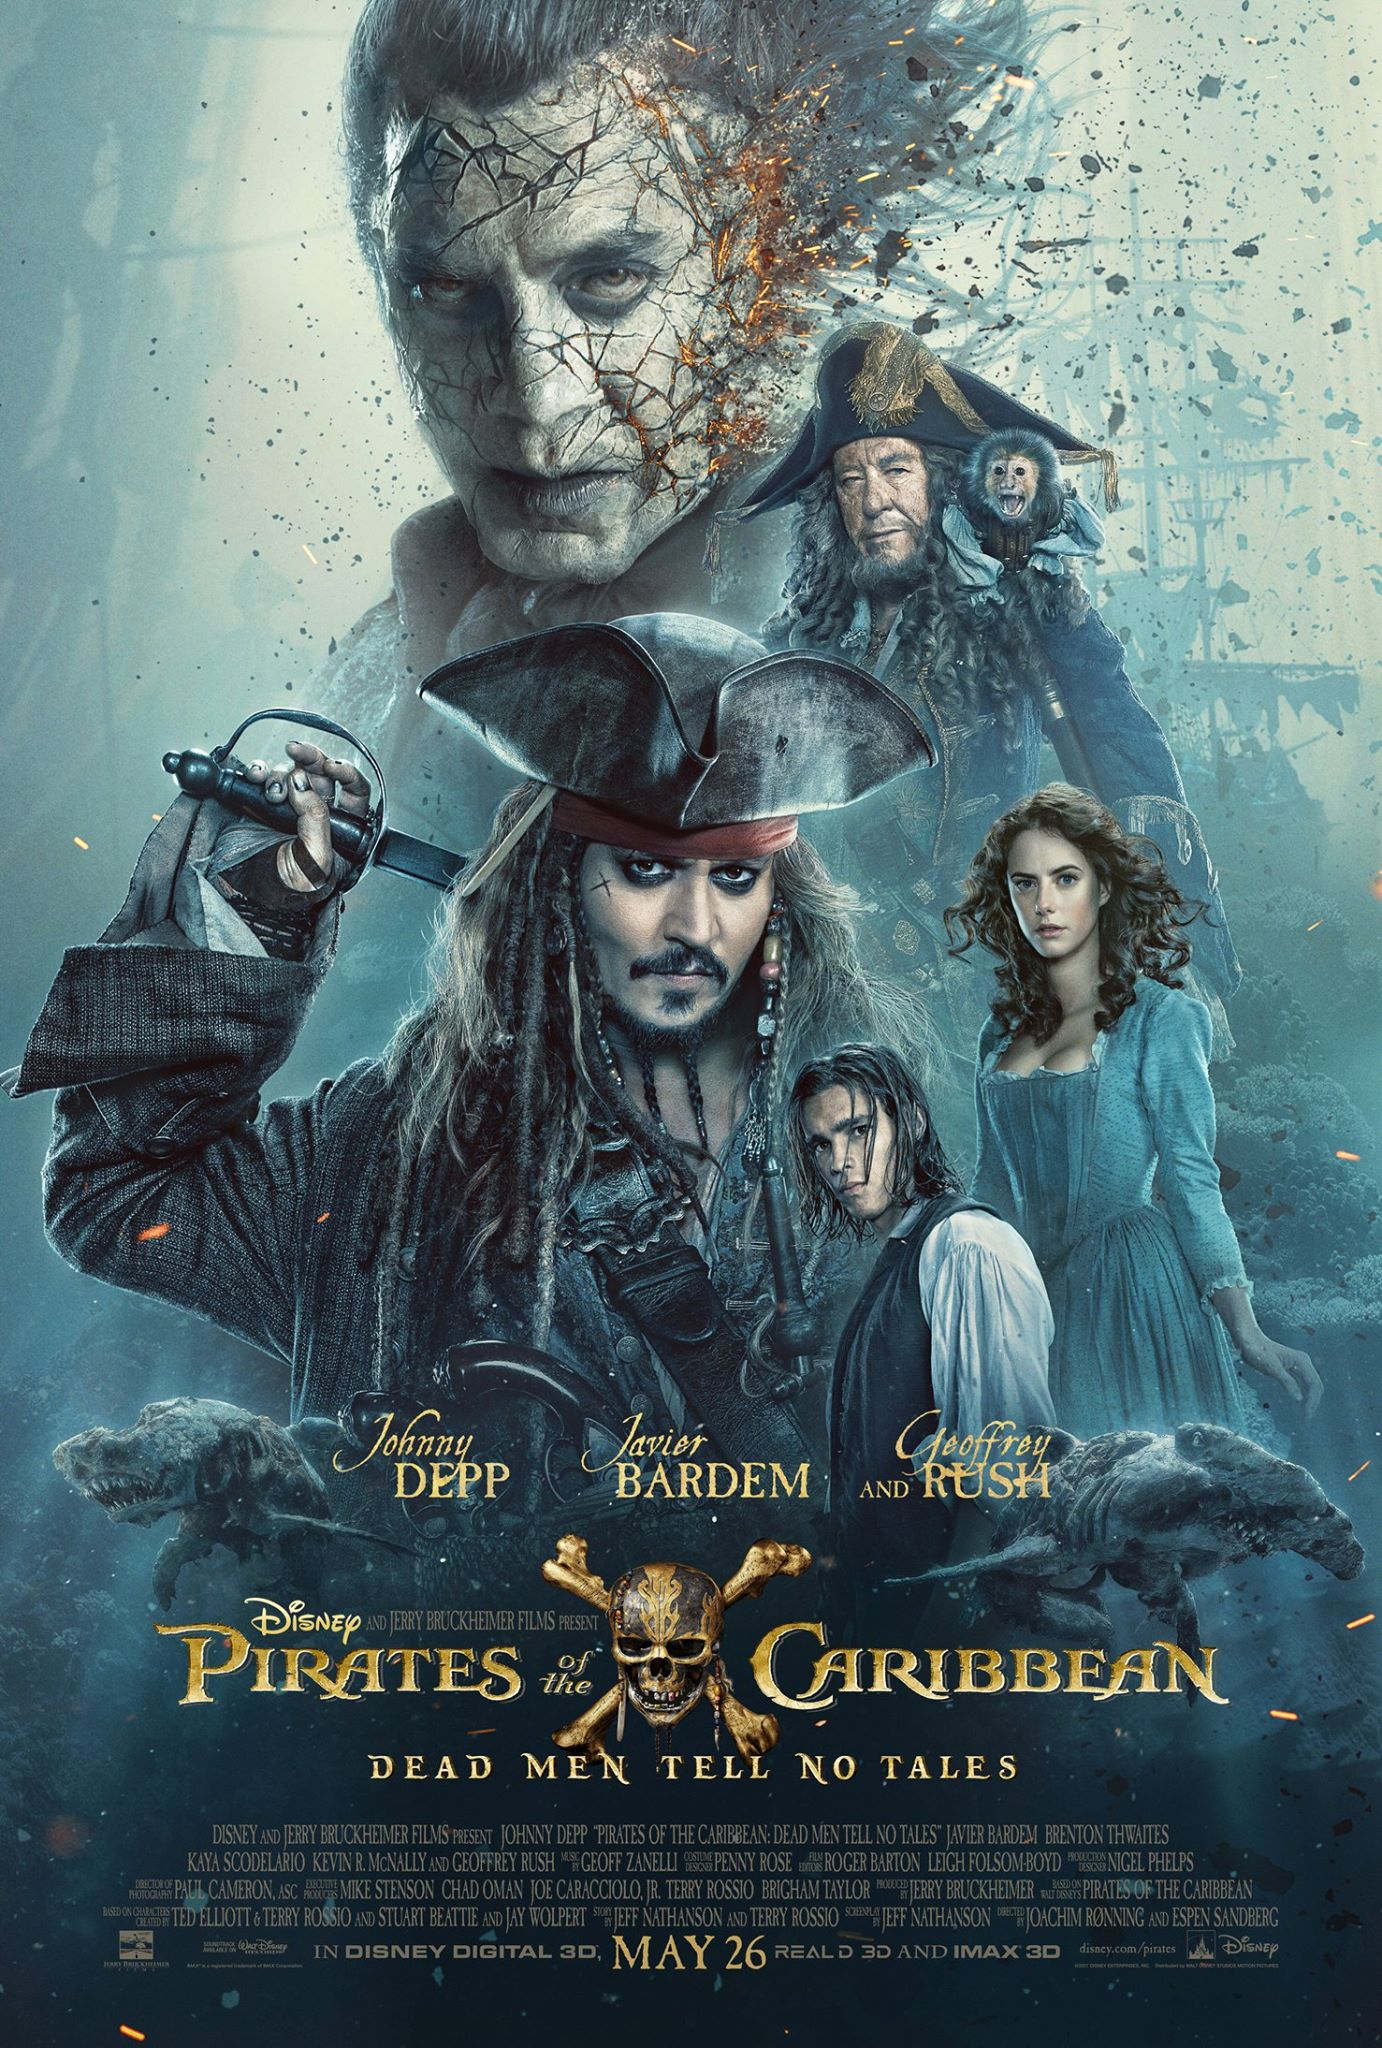 http://cdn2-www.superherohype.com/assets/uploads/gallery/pirates-of-the-caribbean-dead-men-tell-no-tales/17015800_10154981836668830_529268610073059017_o.jpg